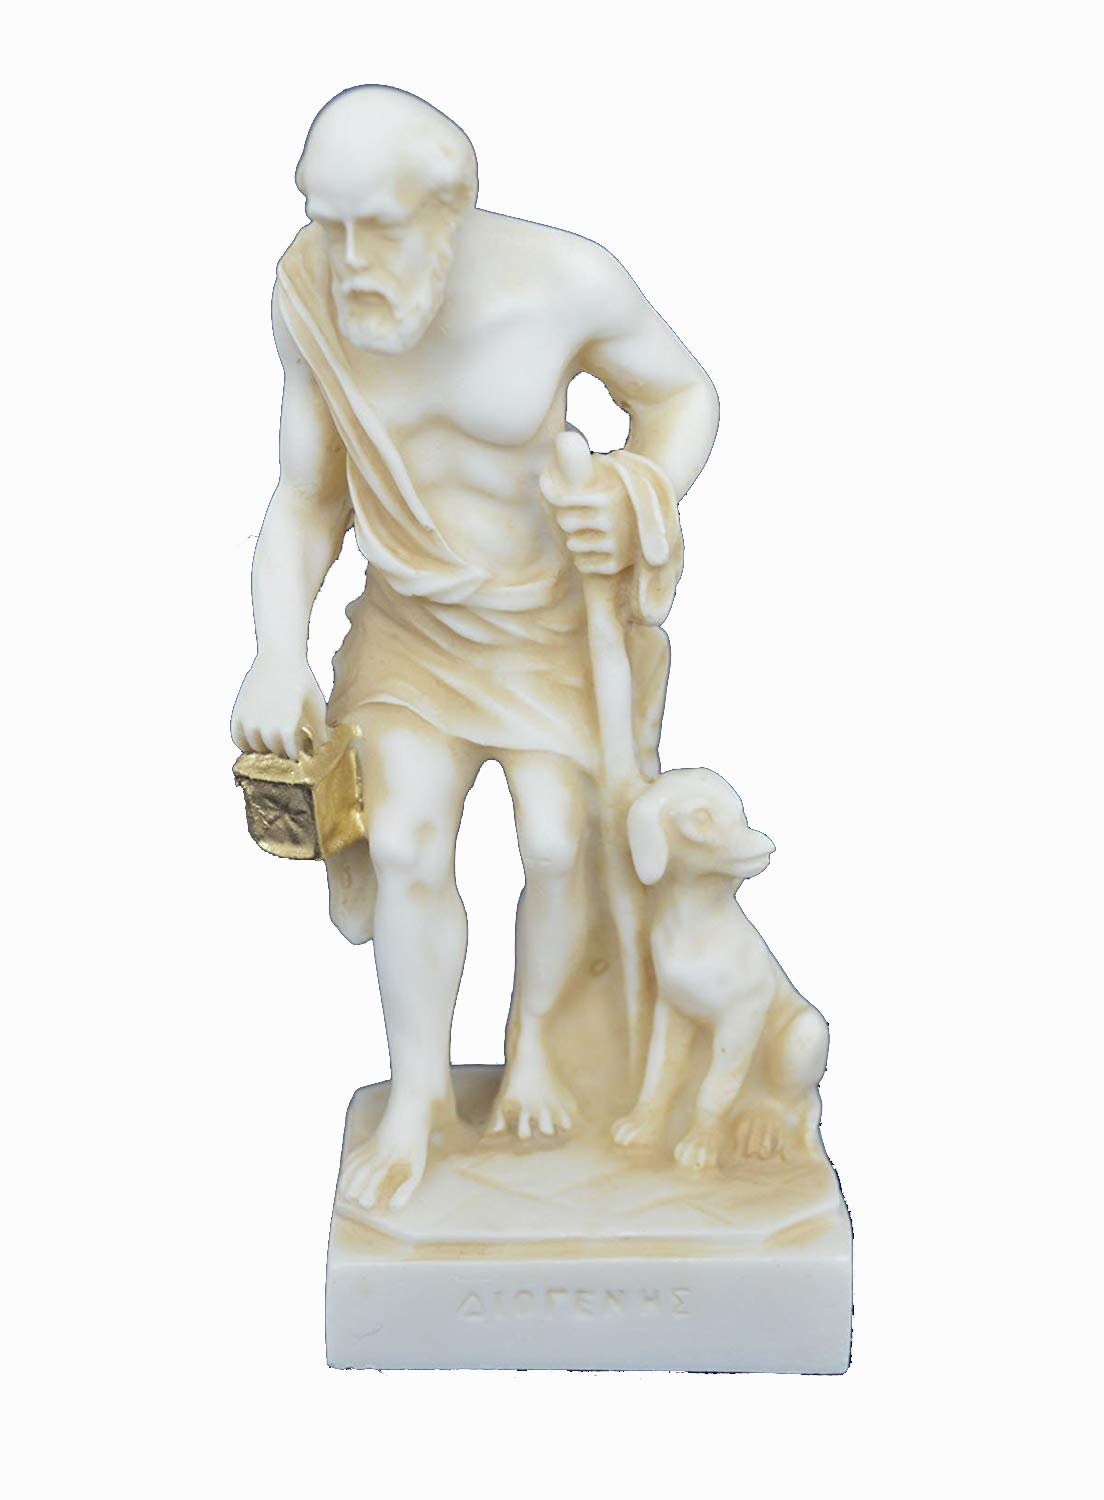 Estia Creations Diogenes Sculpture The Cynic Aged Statue Ancient Greek Philosopher